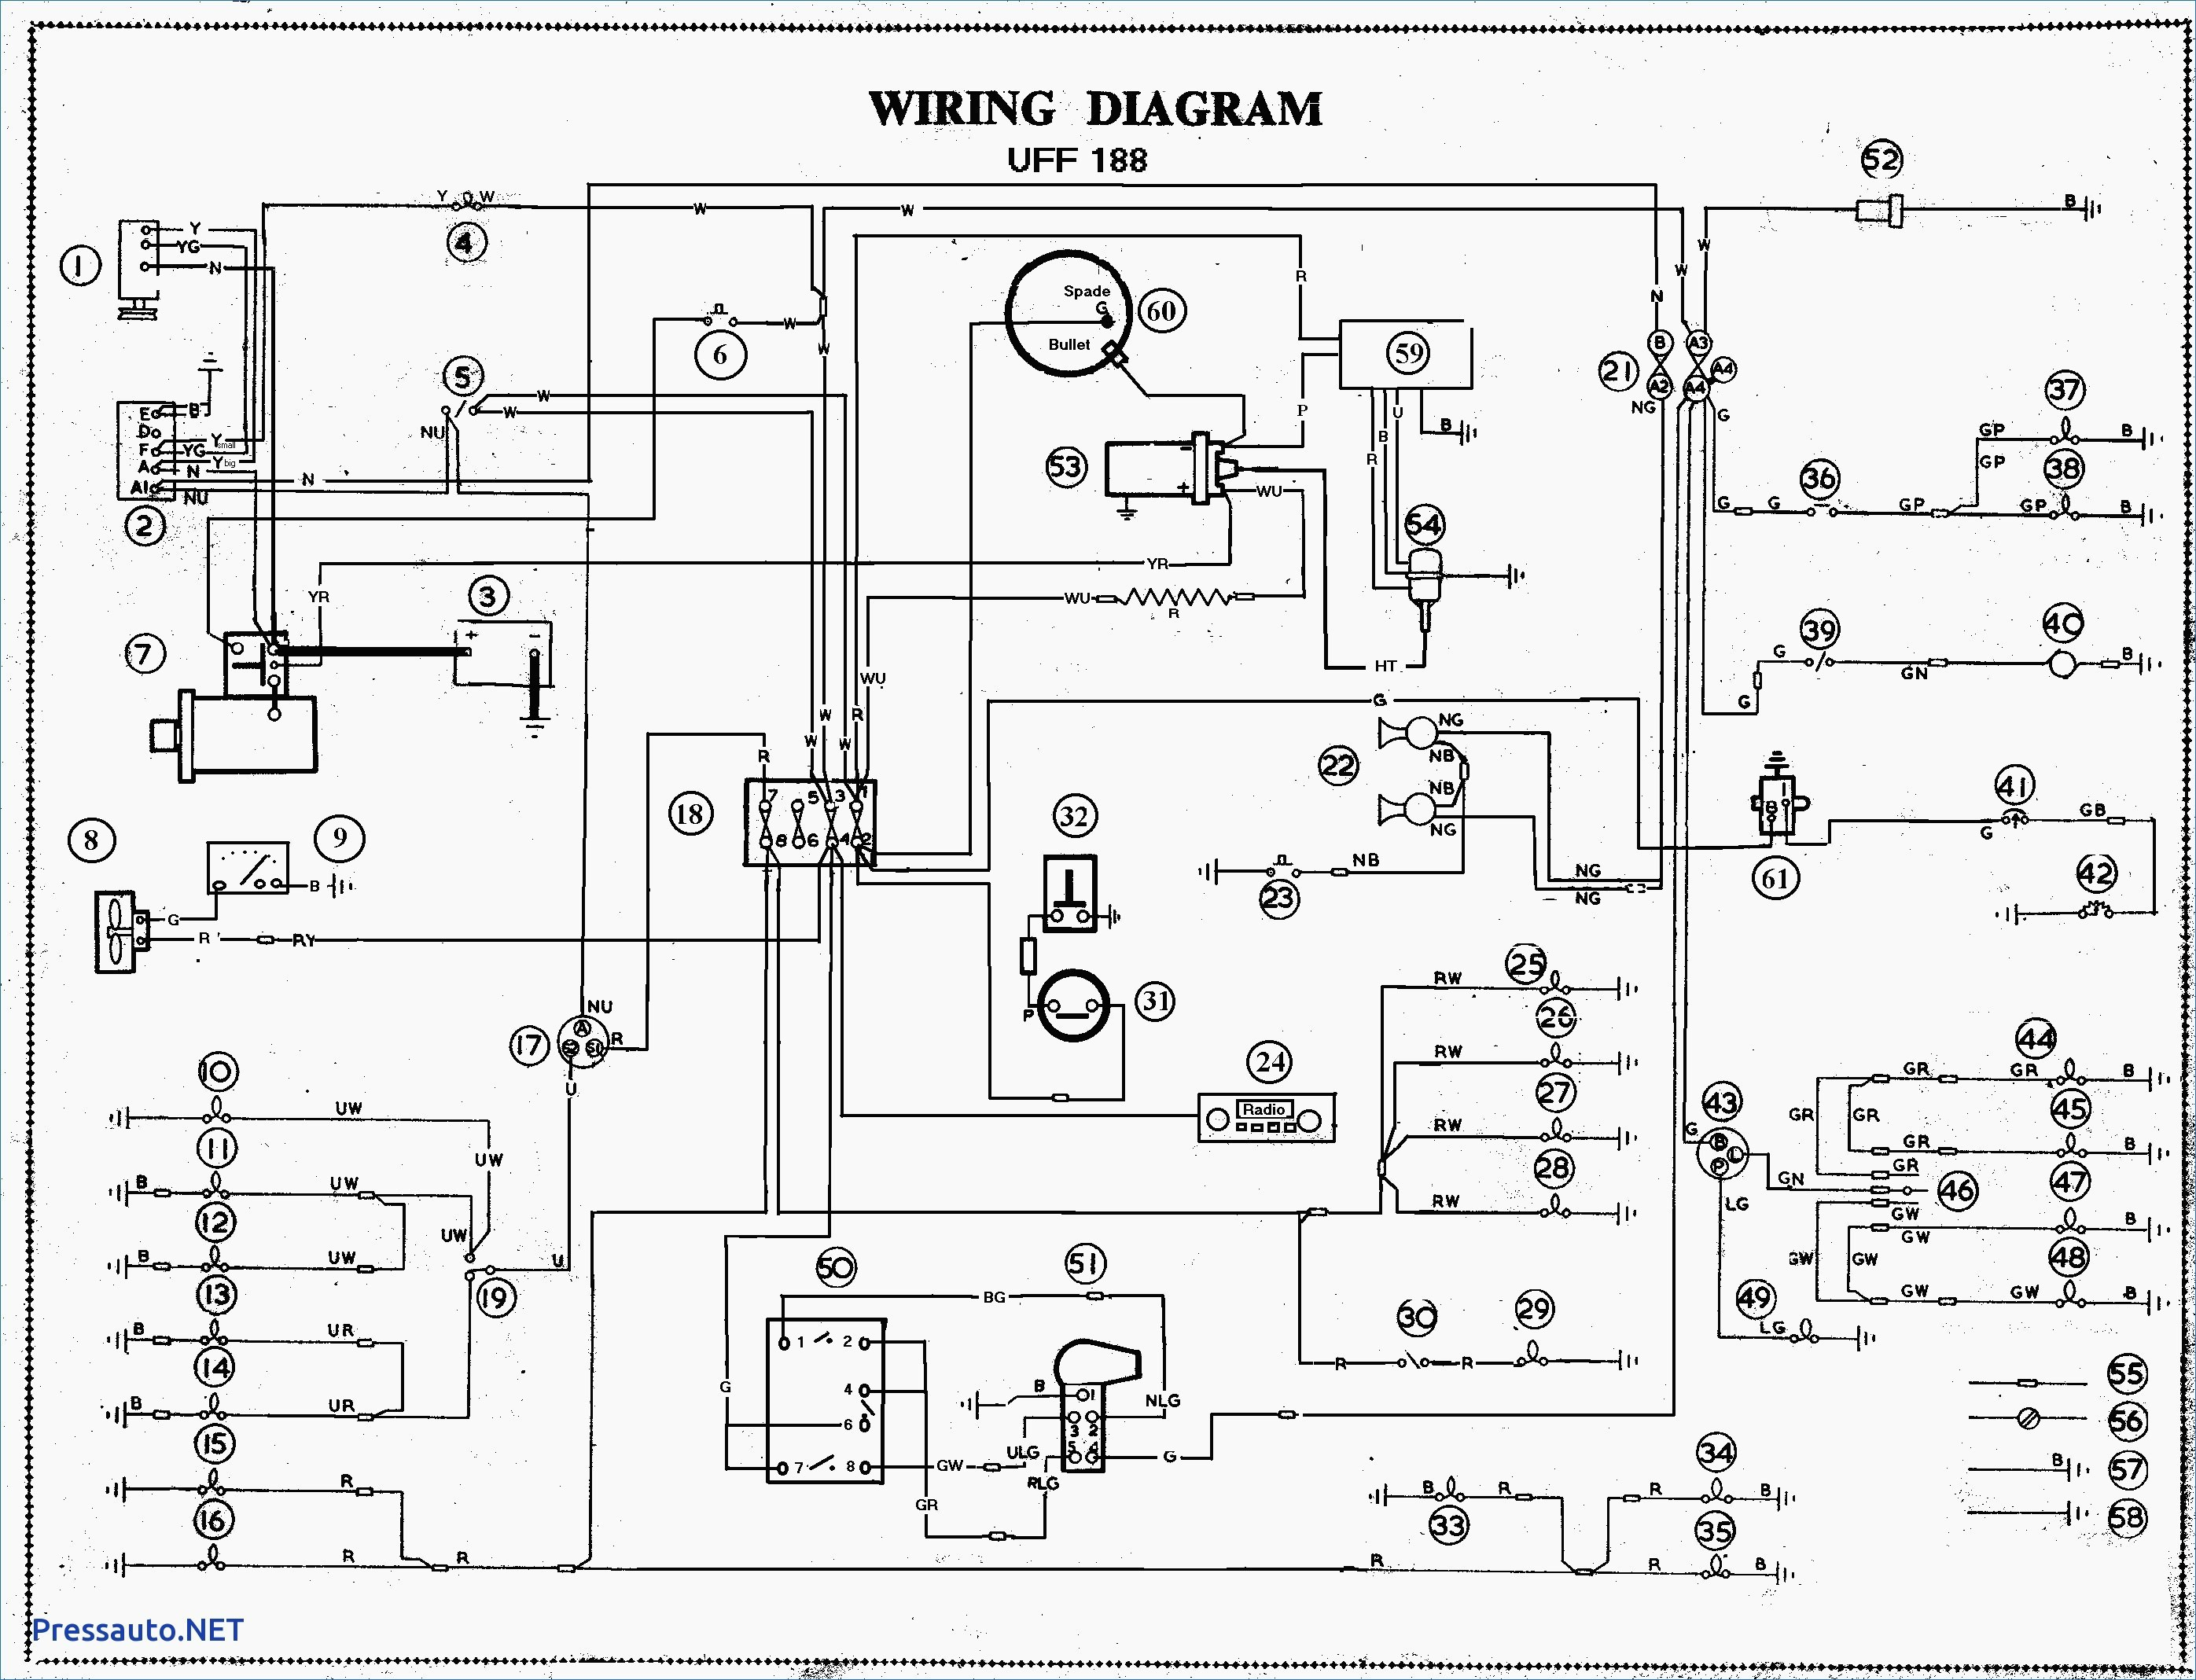 system wiring diagrams 22 wiring diagrams emprendedorlink standardsystem wiring diagrams 22 wiring diagrams emprendedorlinkwiring diagram 22 starter generator wiring diagram emprendedorlinkbulldog keyless entry